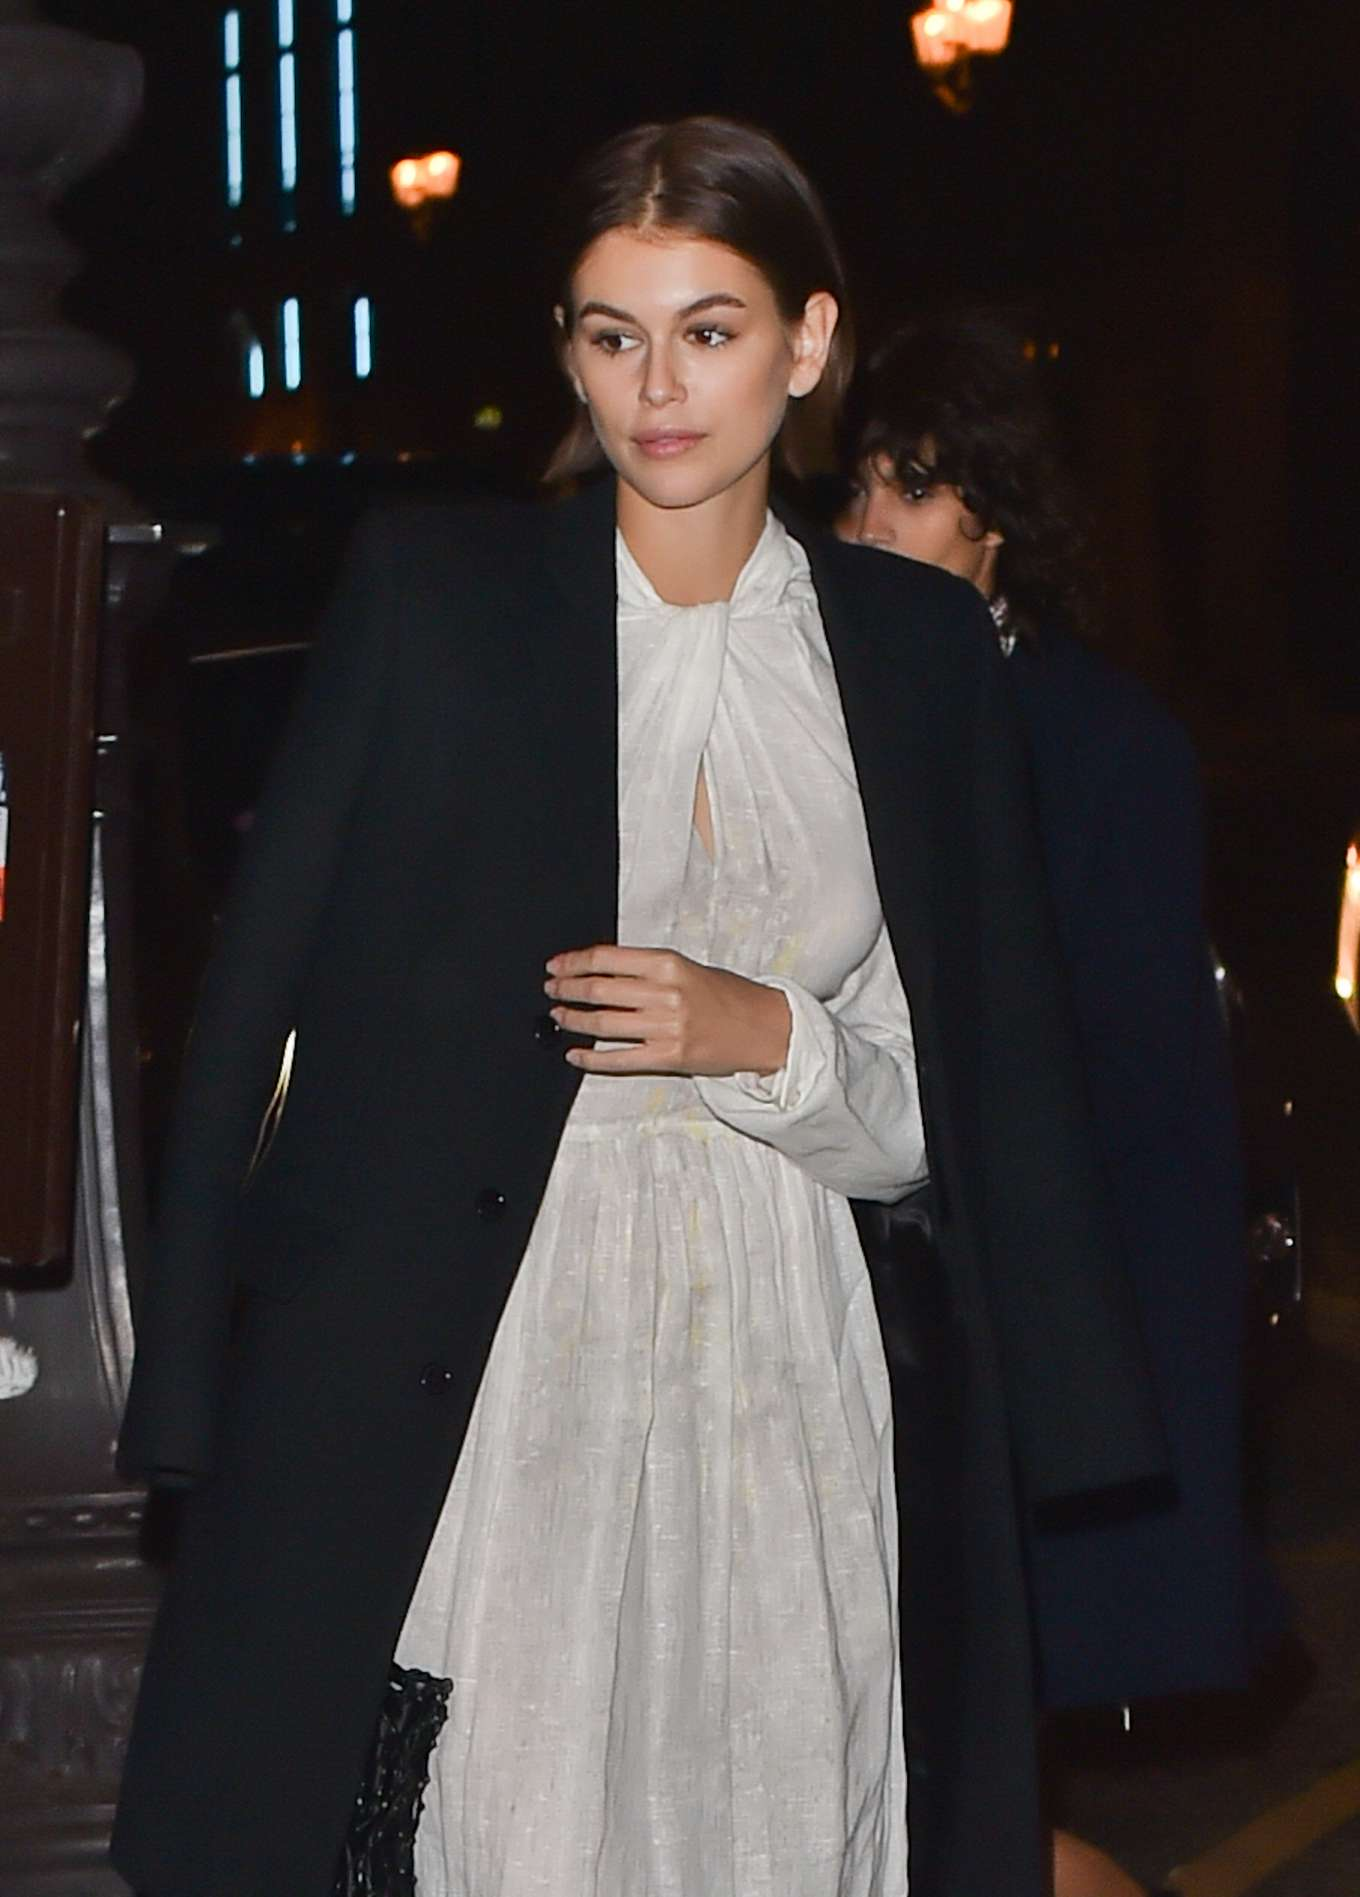 Kaia Gerber - Arrives at the Prada Dinner Party in Paris